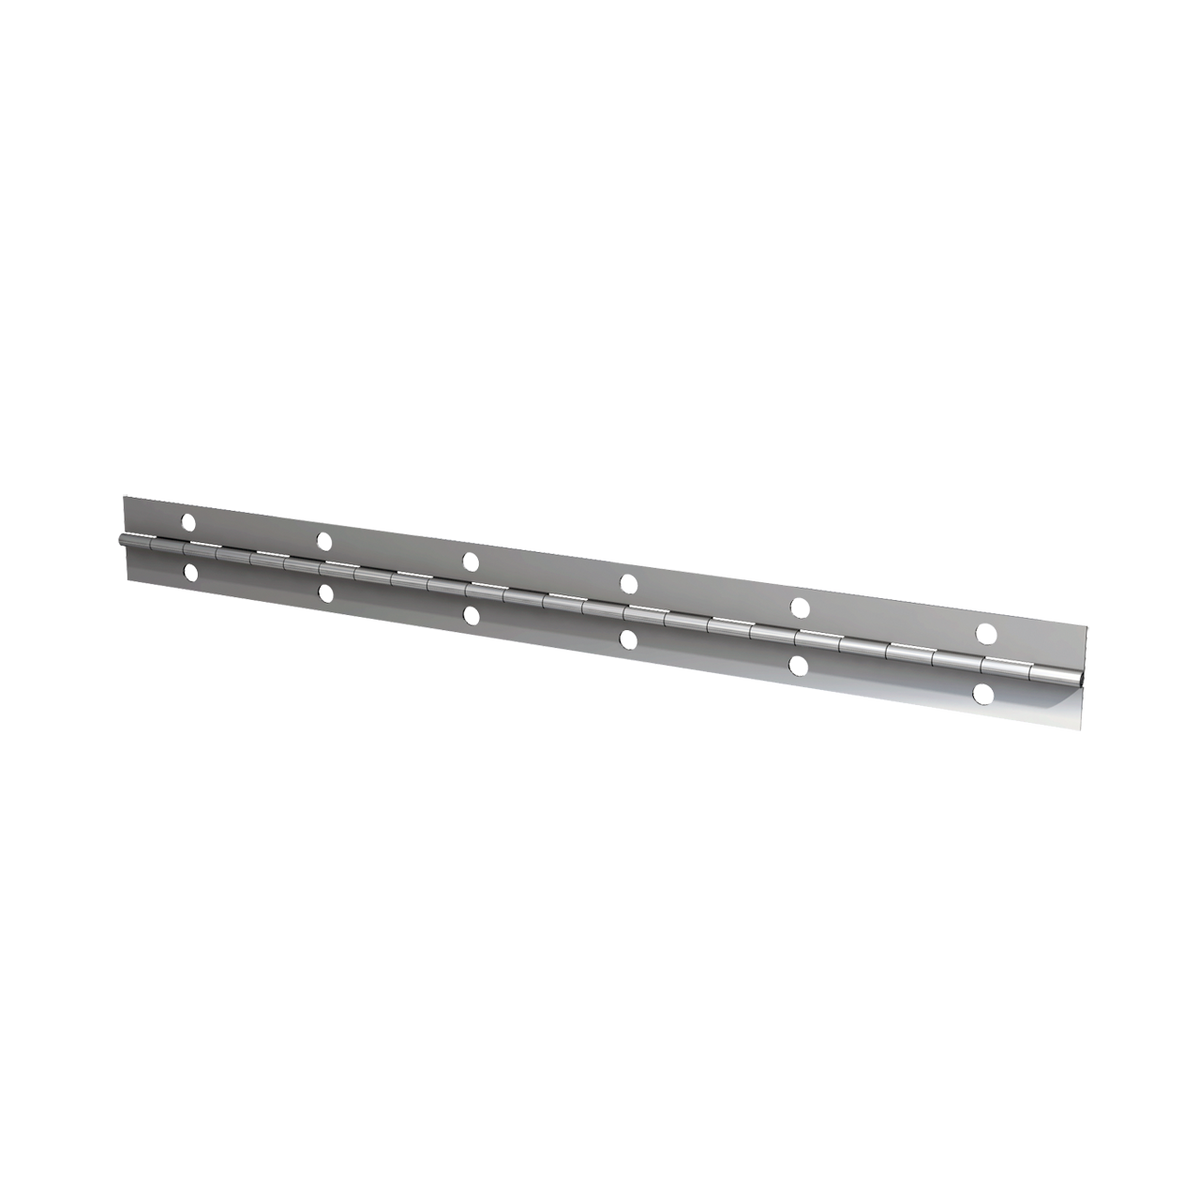 "Steel Continuous Hinge - 0.03"" x 1.0"" x 72"" with Nickel Plate & Mounting Holes"